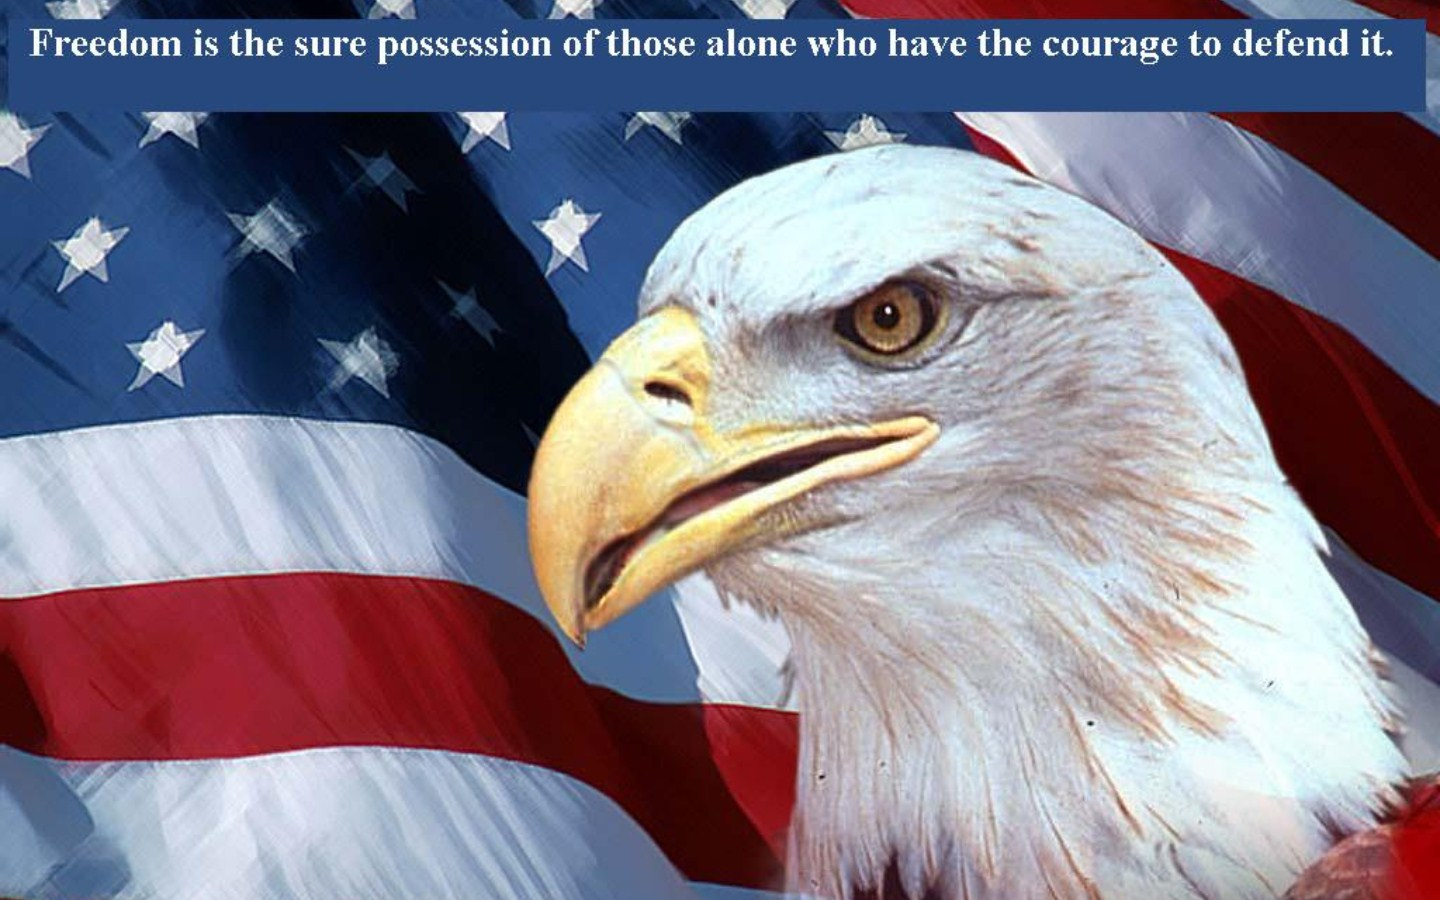 wallpaper Courage Bald Eagle and American Flag 1440x900